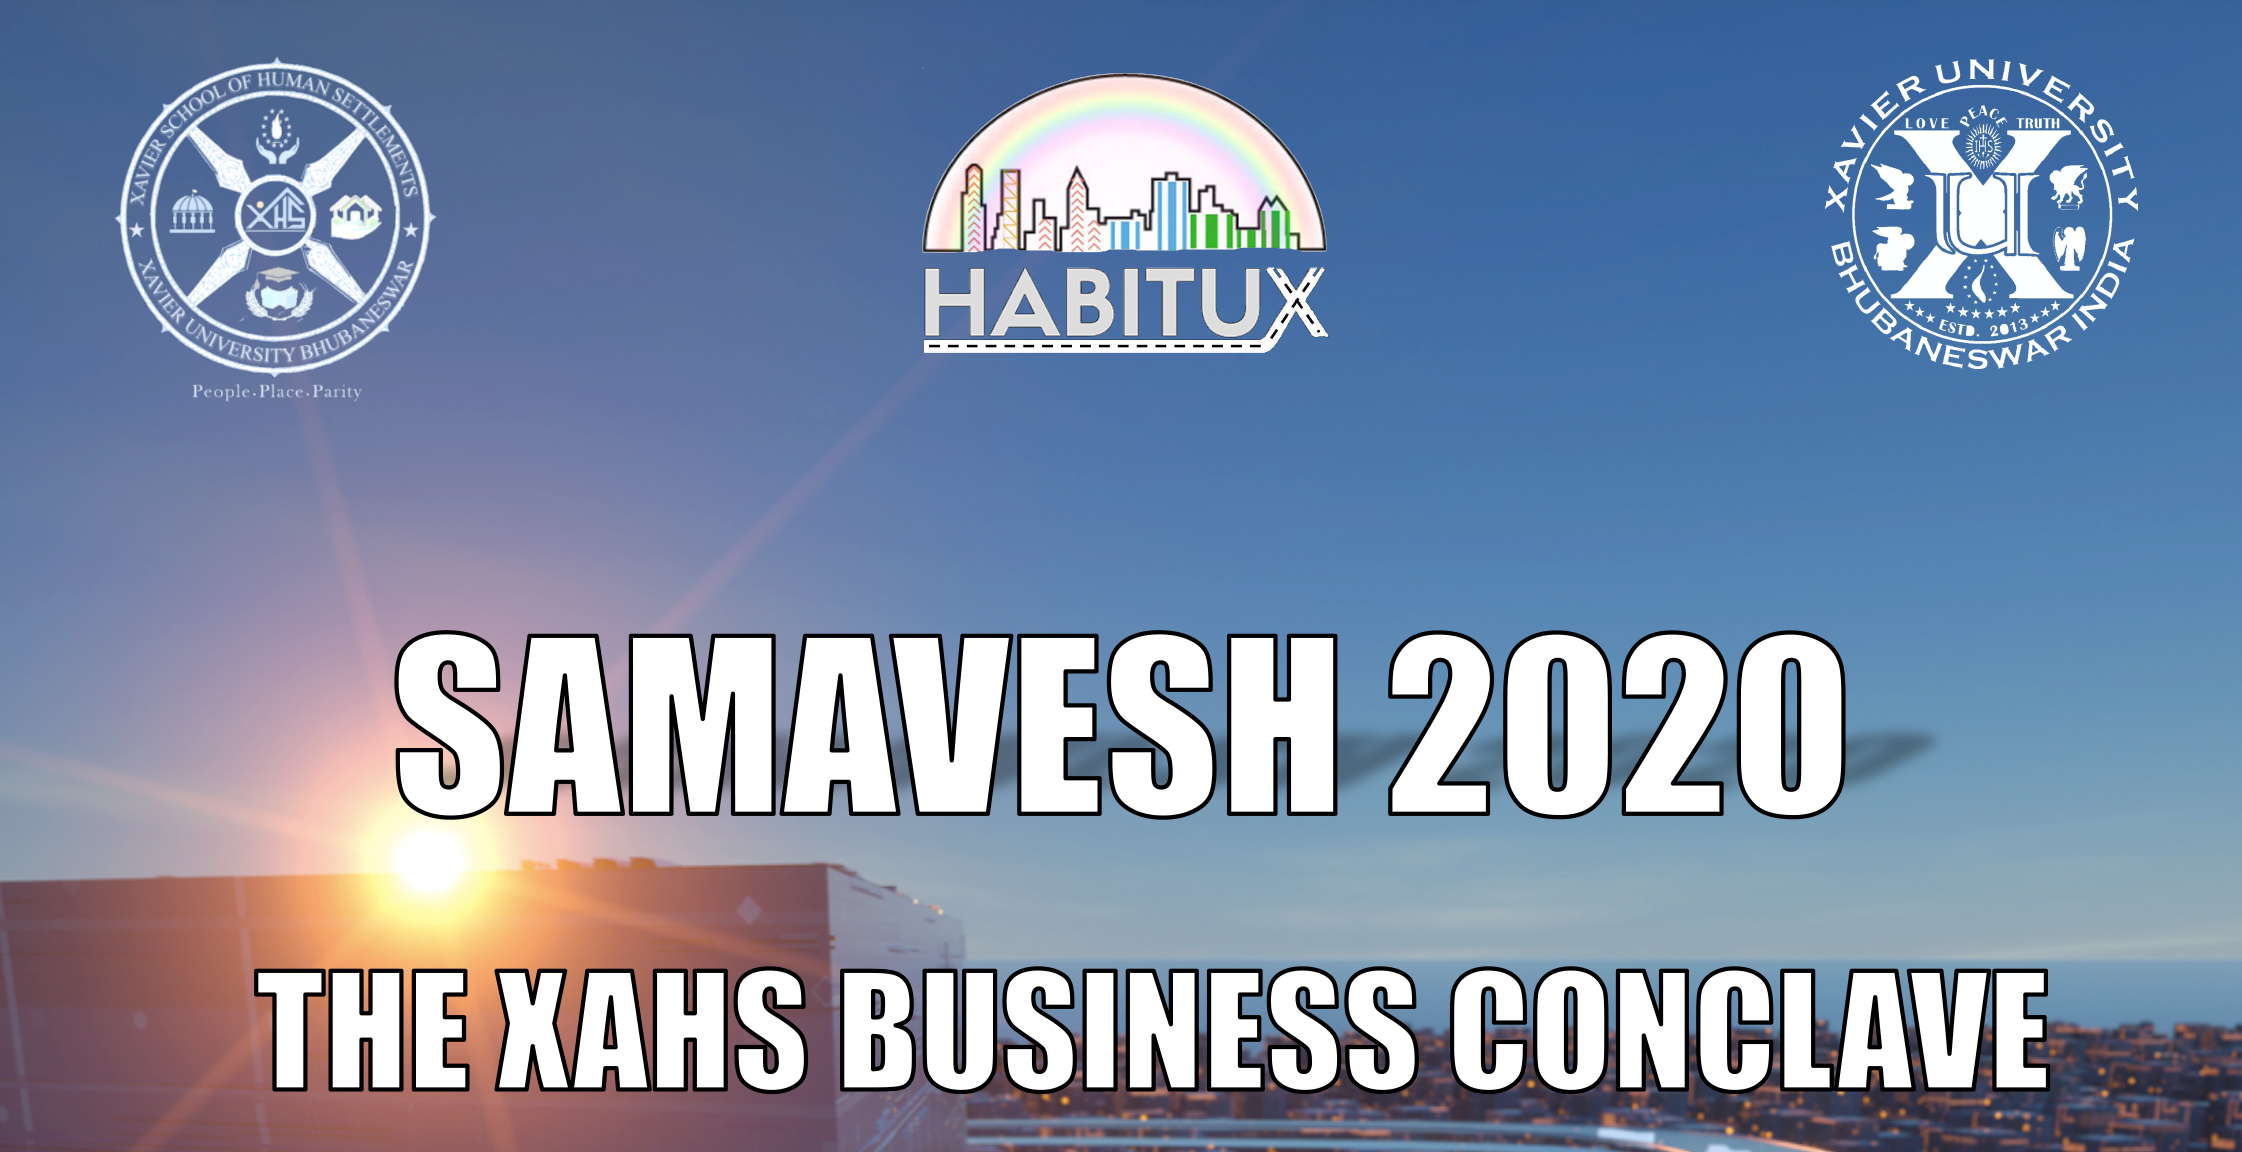 SAMAVESH 10 – 12th Sep, 2020 -The School of Human Settlements Business Conclave